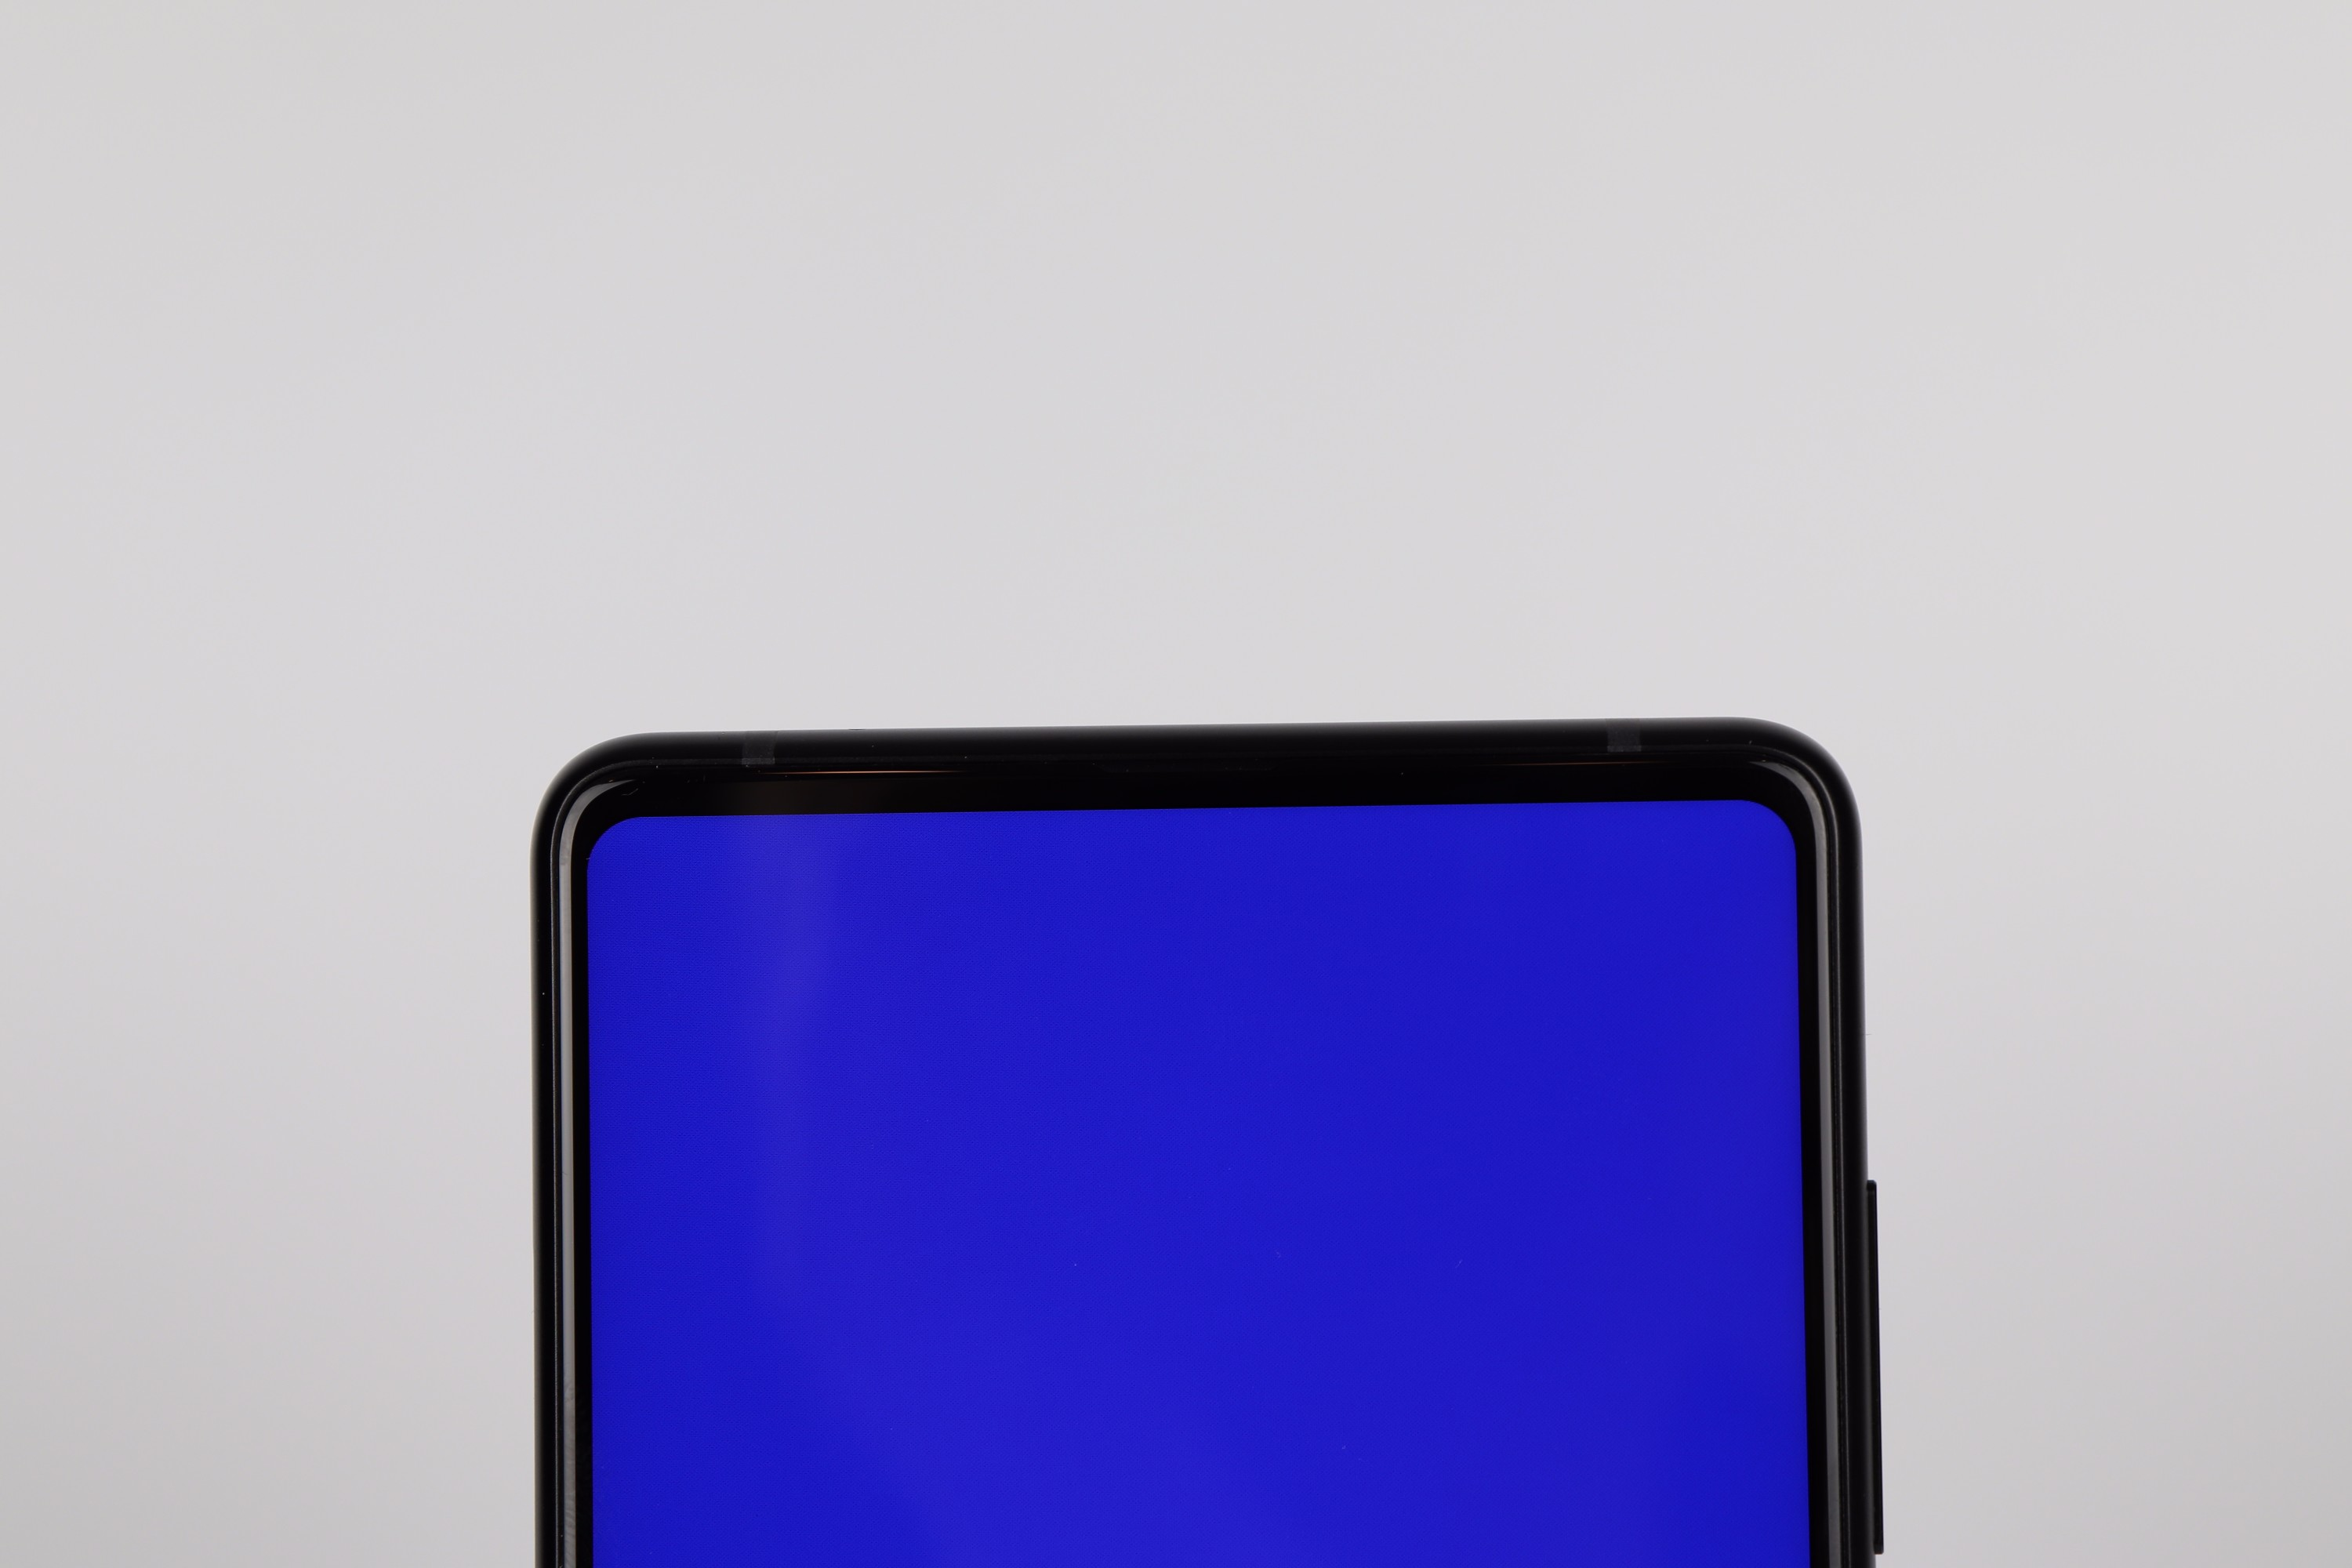 Xiaomi Mi Mix 2 Display Color test